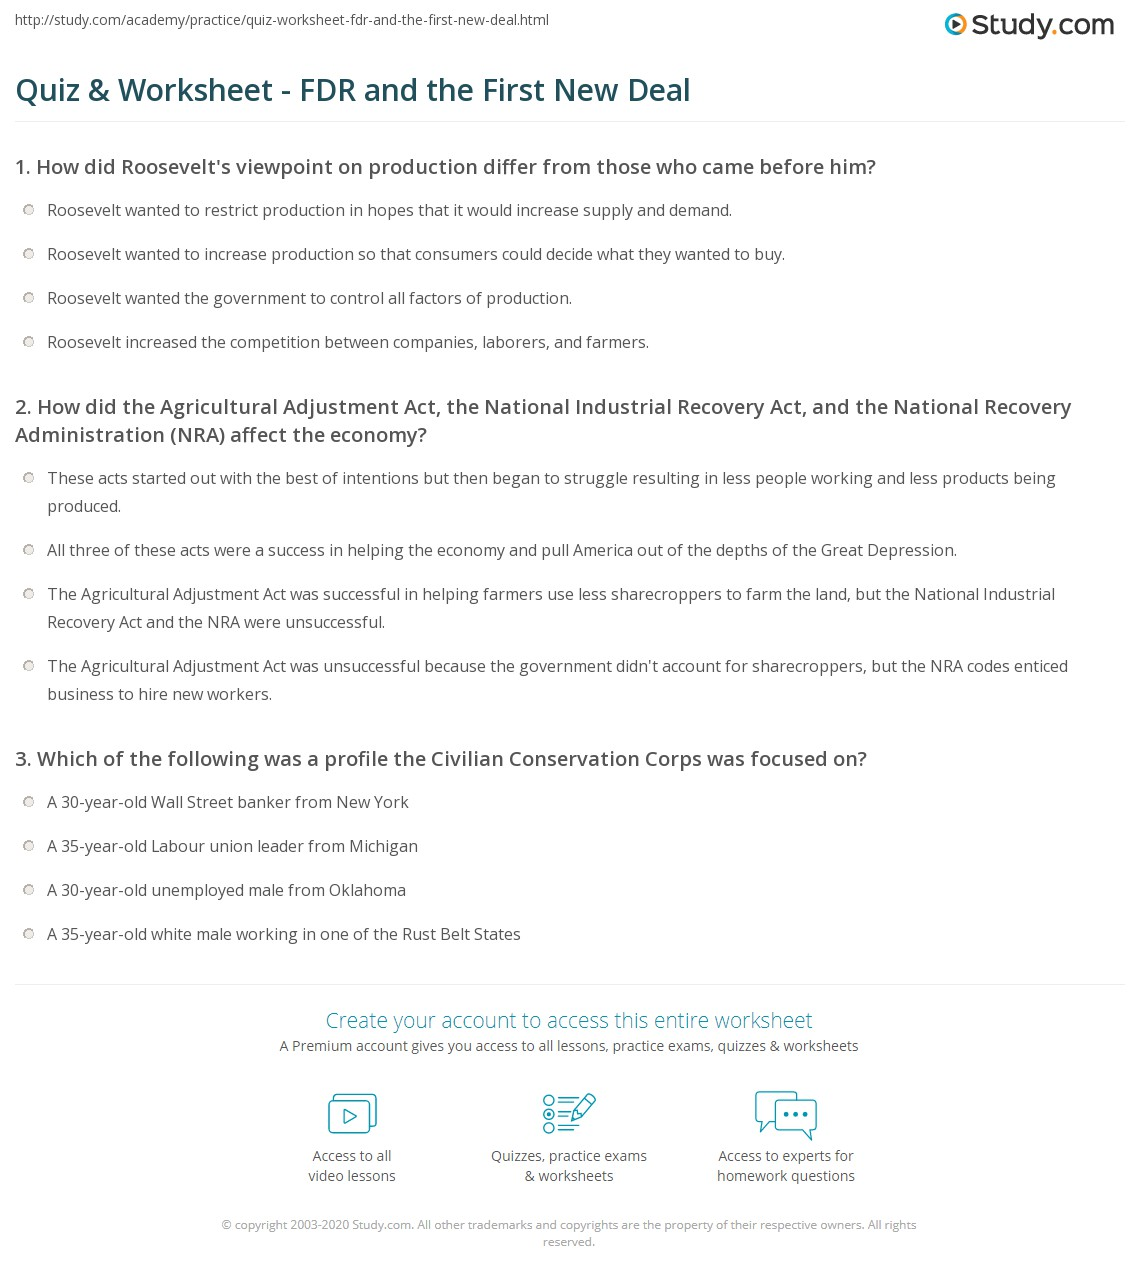 Quiz & Worksheet FDR and the First New Deal